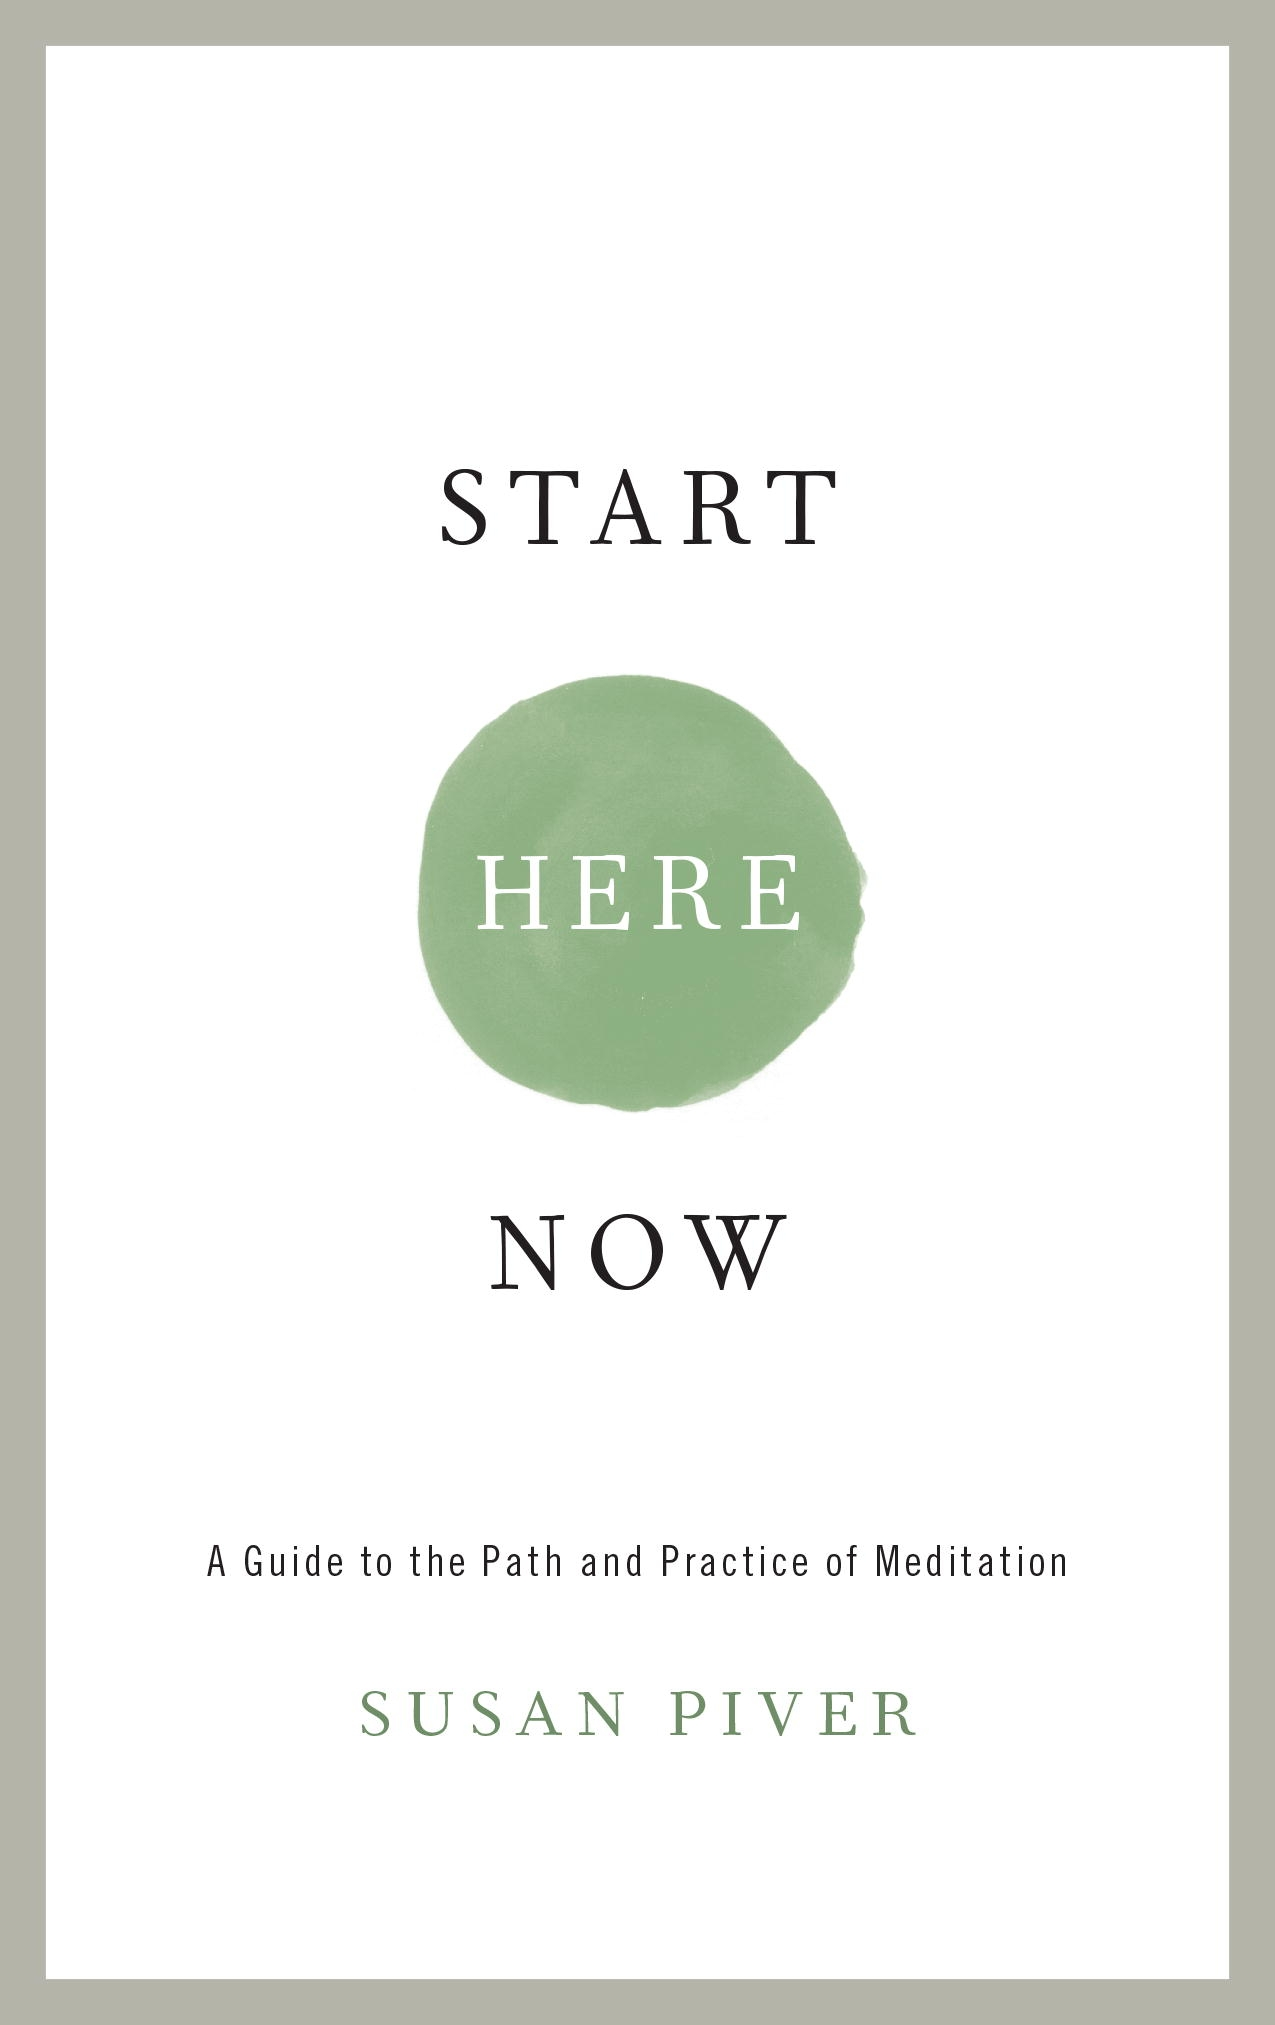 Start Here NowAn Open-Hearted Guide to the Path and Practice ... by Susan Piver, ISBN: 9781611802672